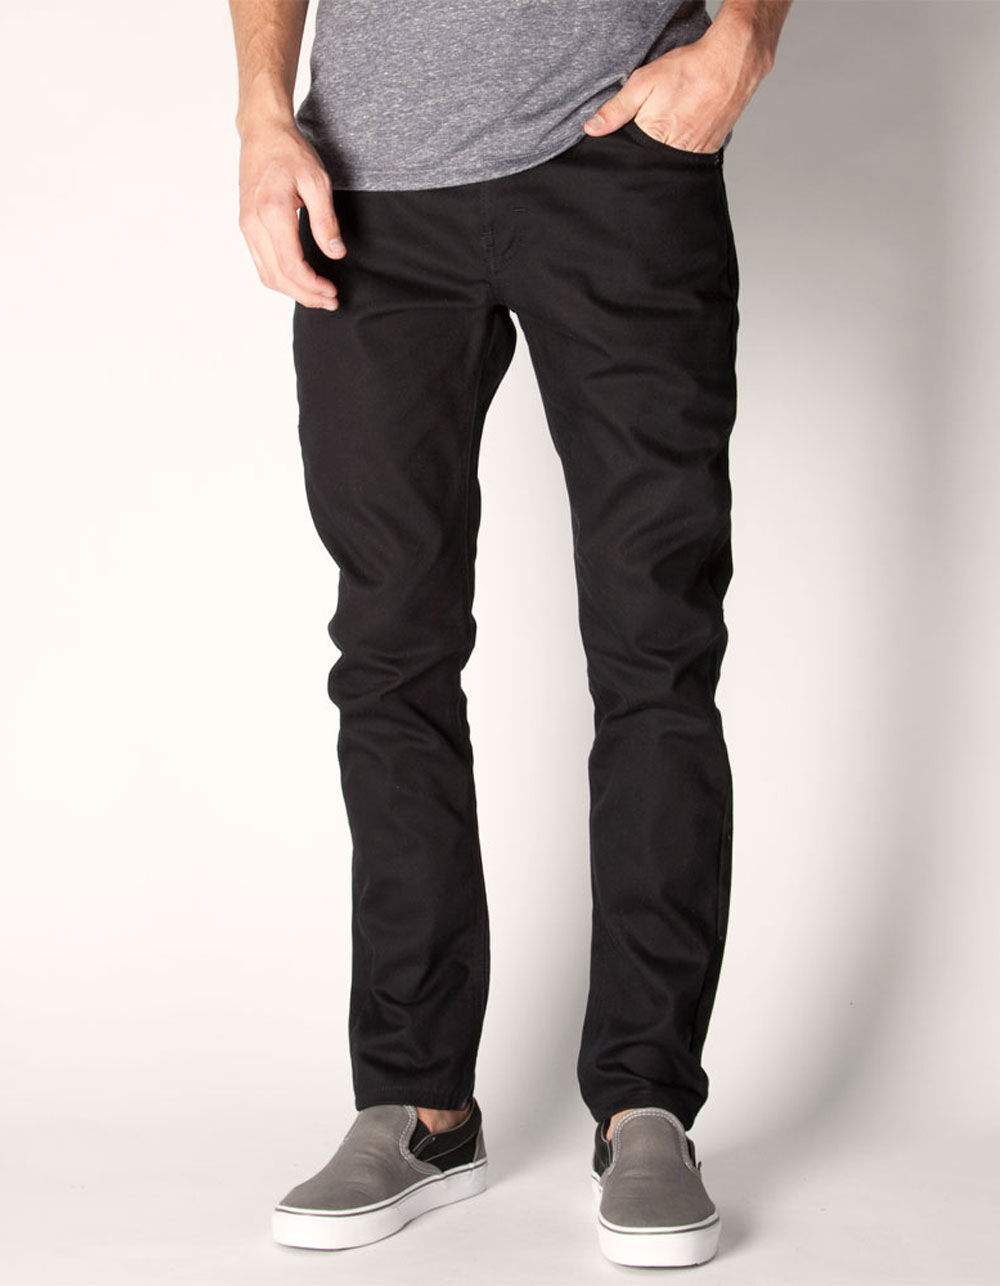 DICKIES 810 Mens Skinny Pants